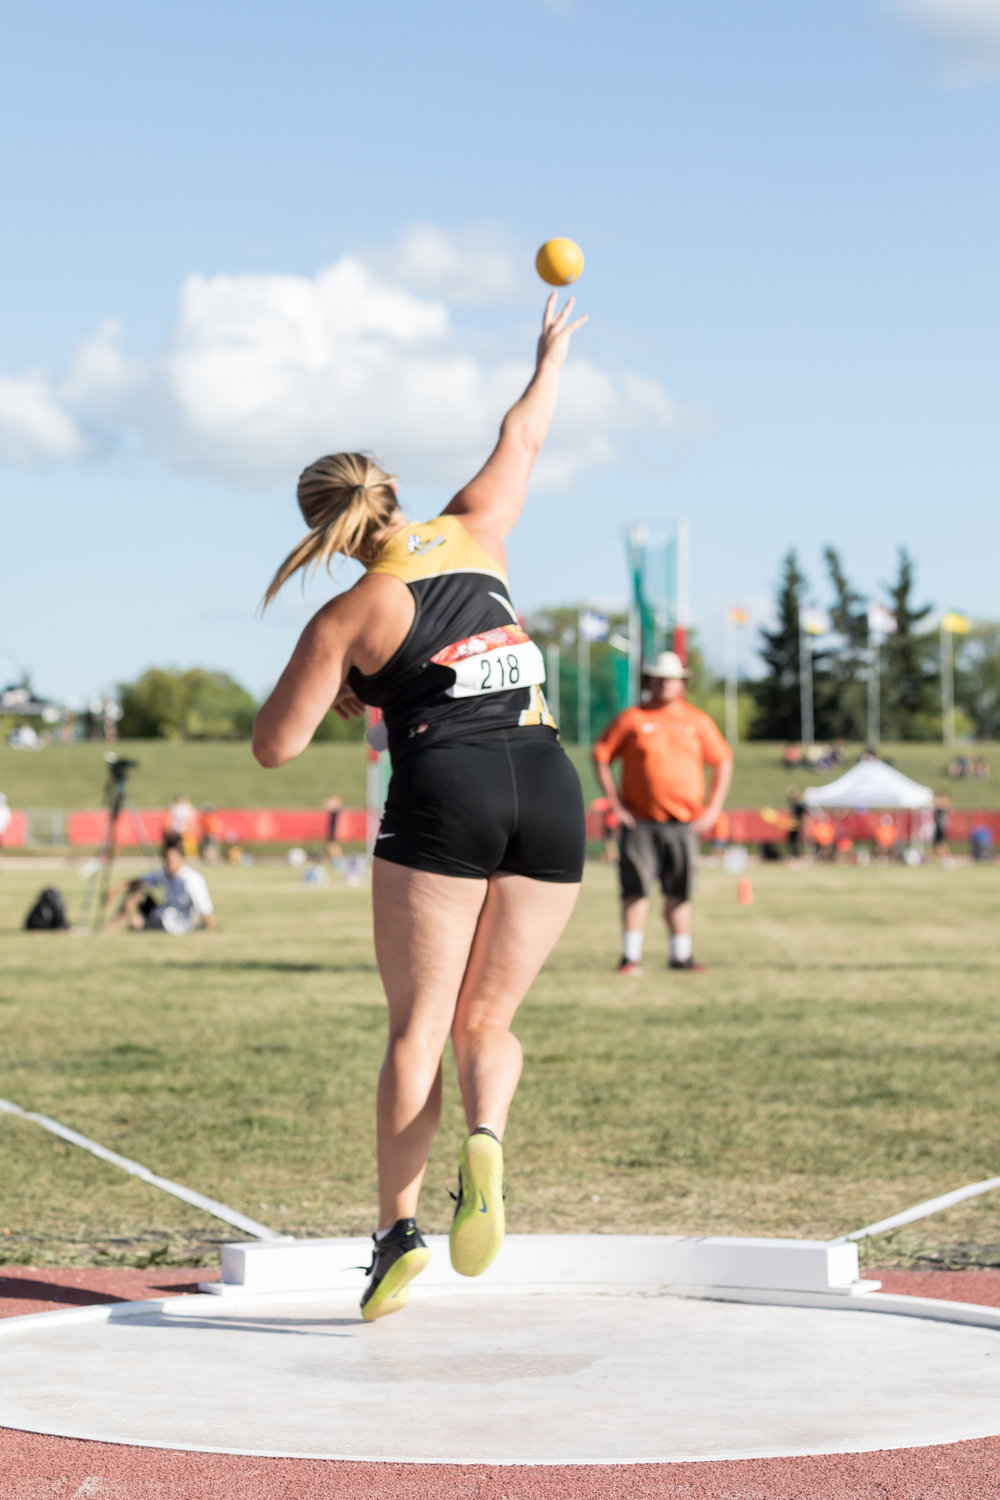 Canada Summer Games - Shot Put